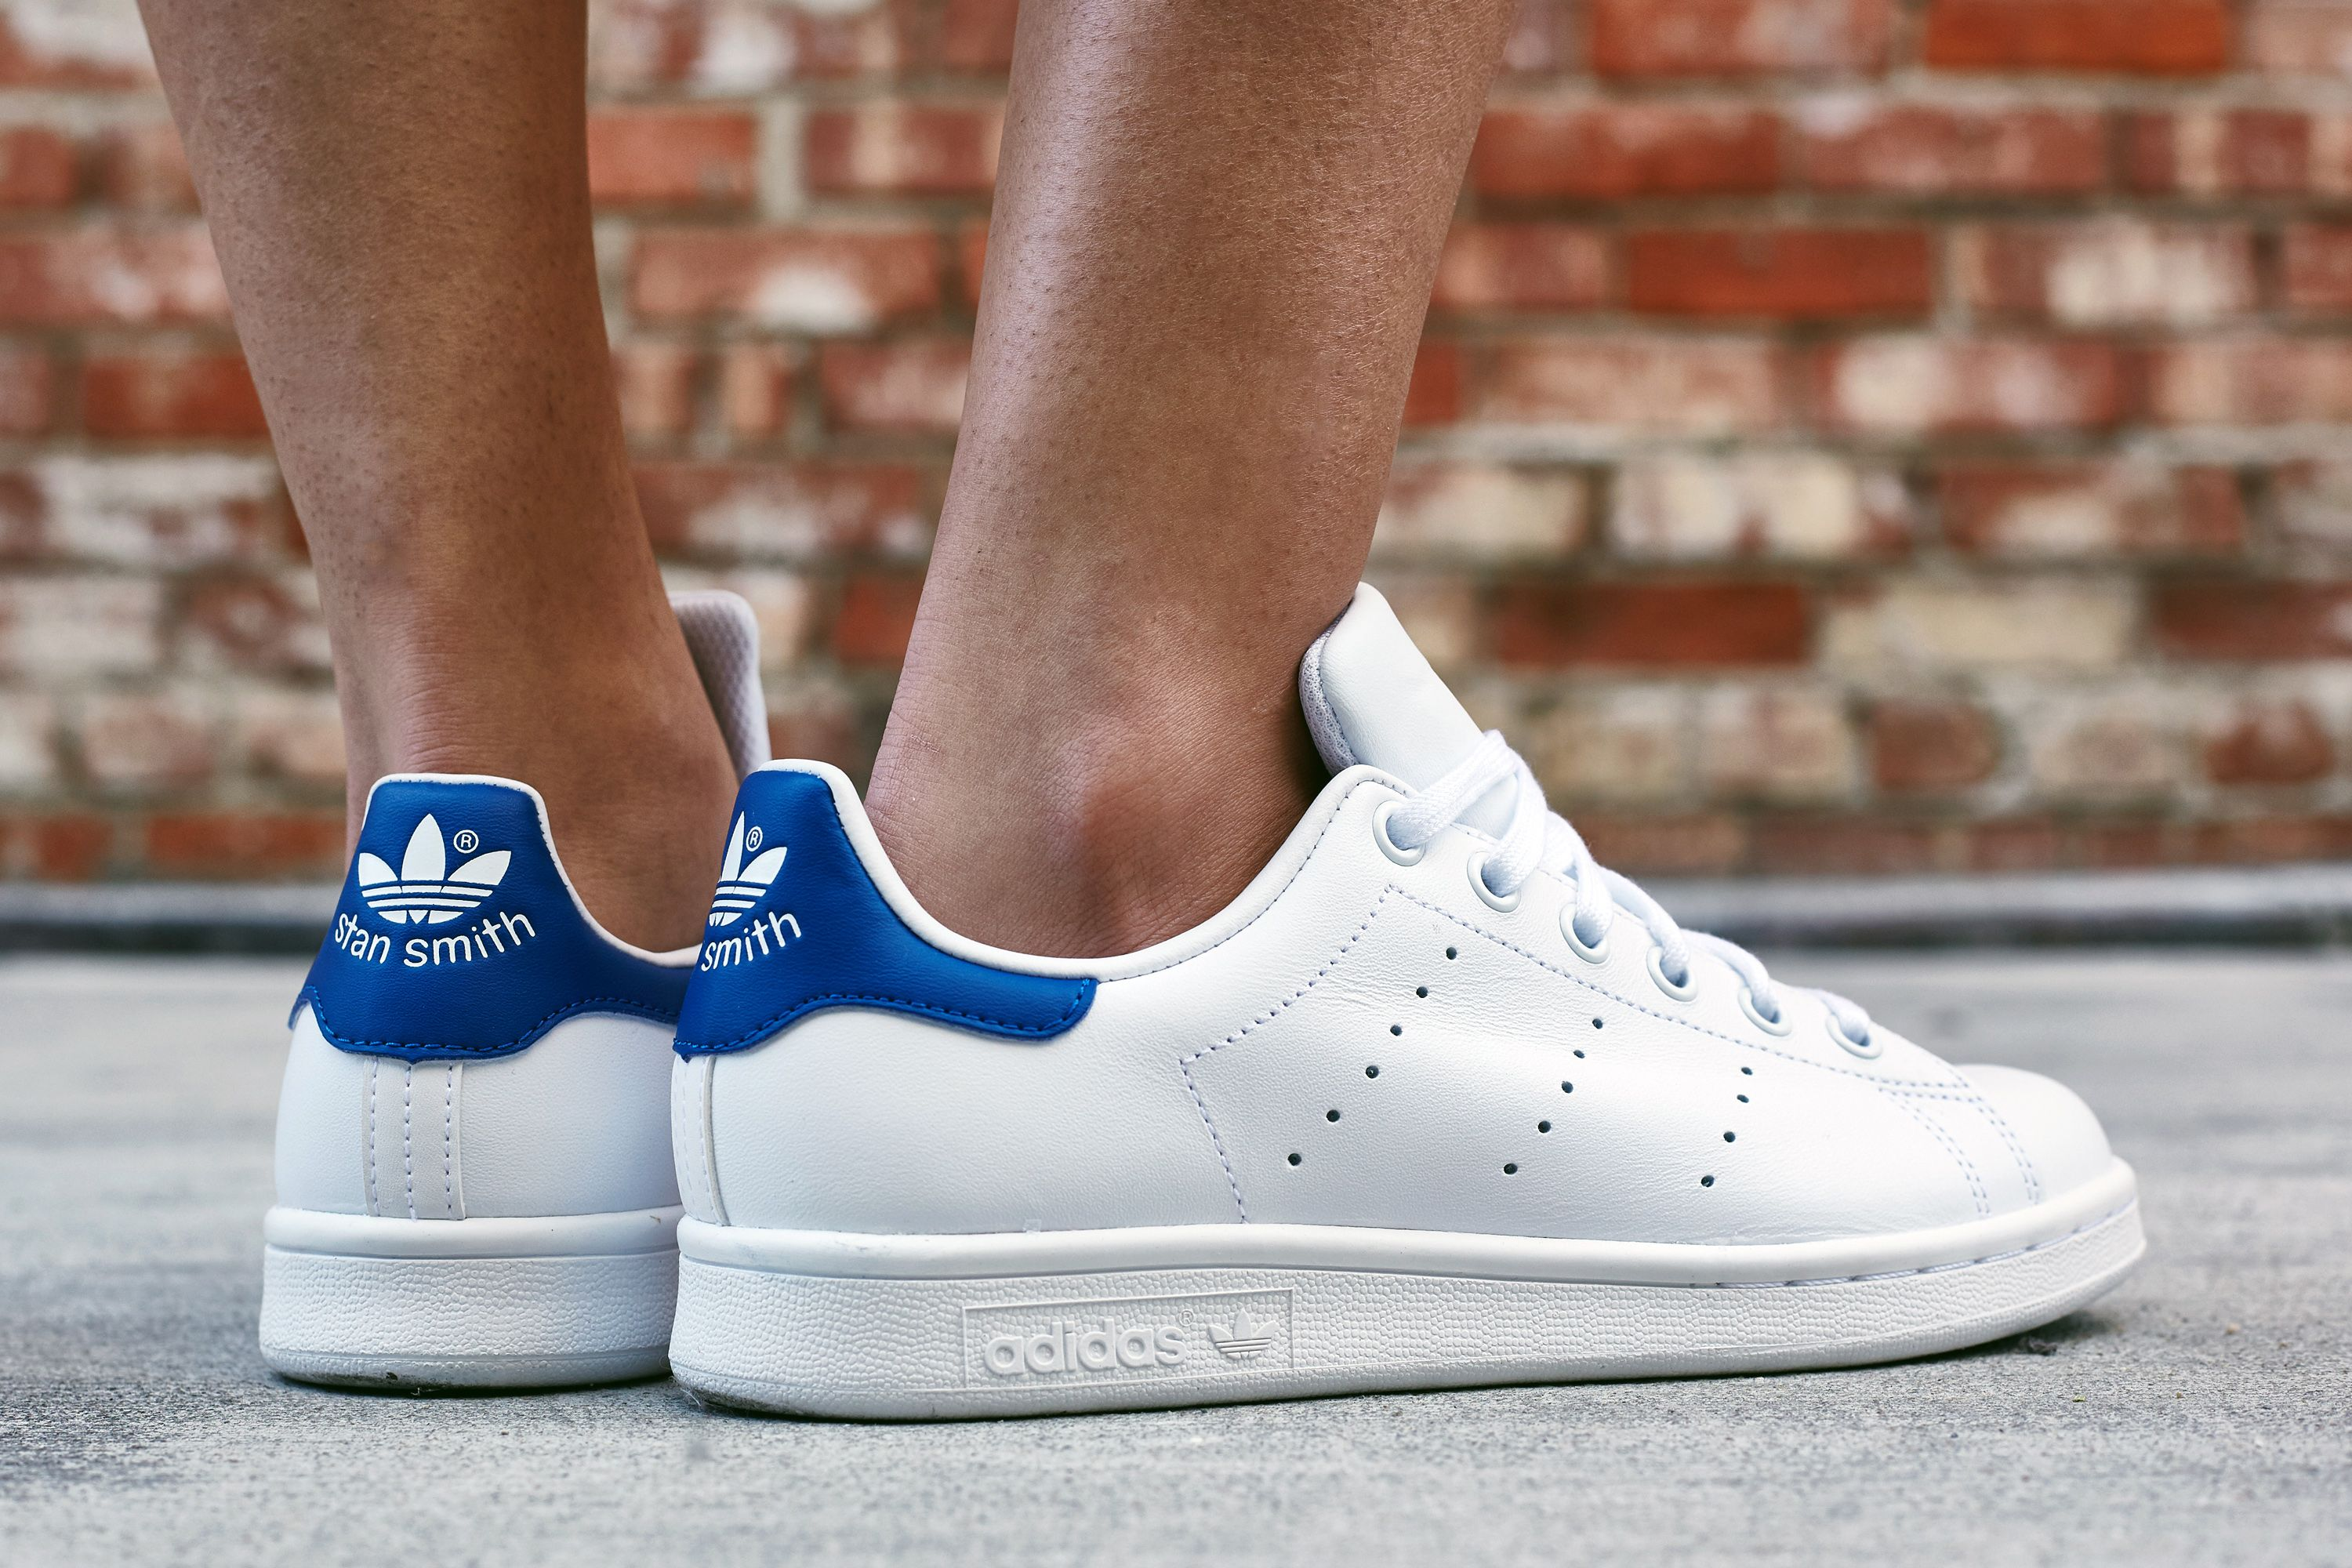 adidas Stan Smith White/Royal On-Foot Look | Shoes | Pinterest | Adidas  stan smith white, Stan smith white and Adidas stan smith